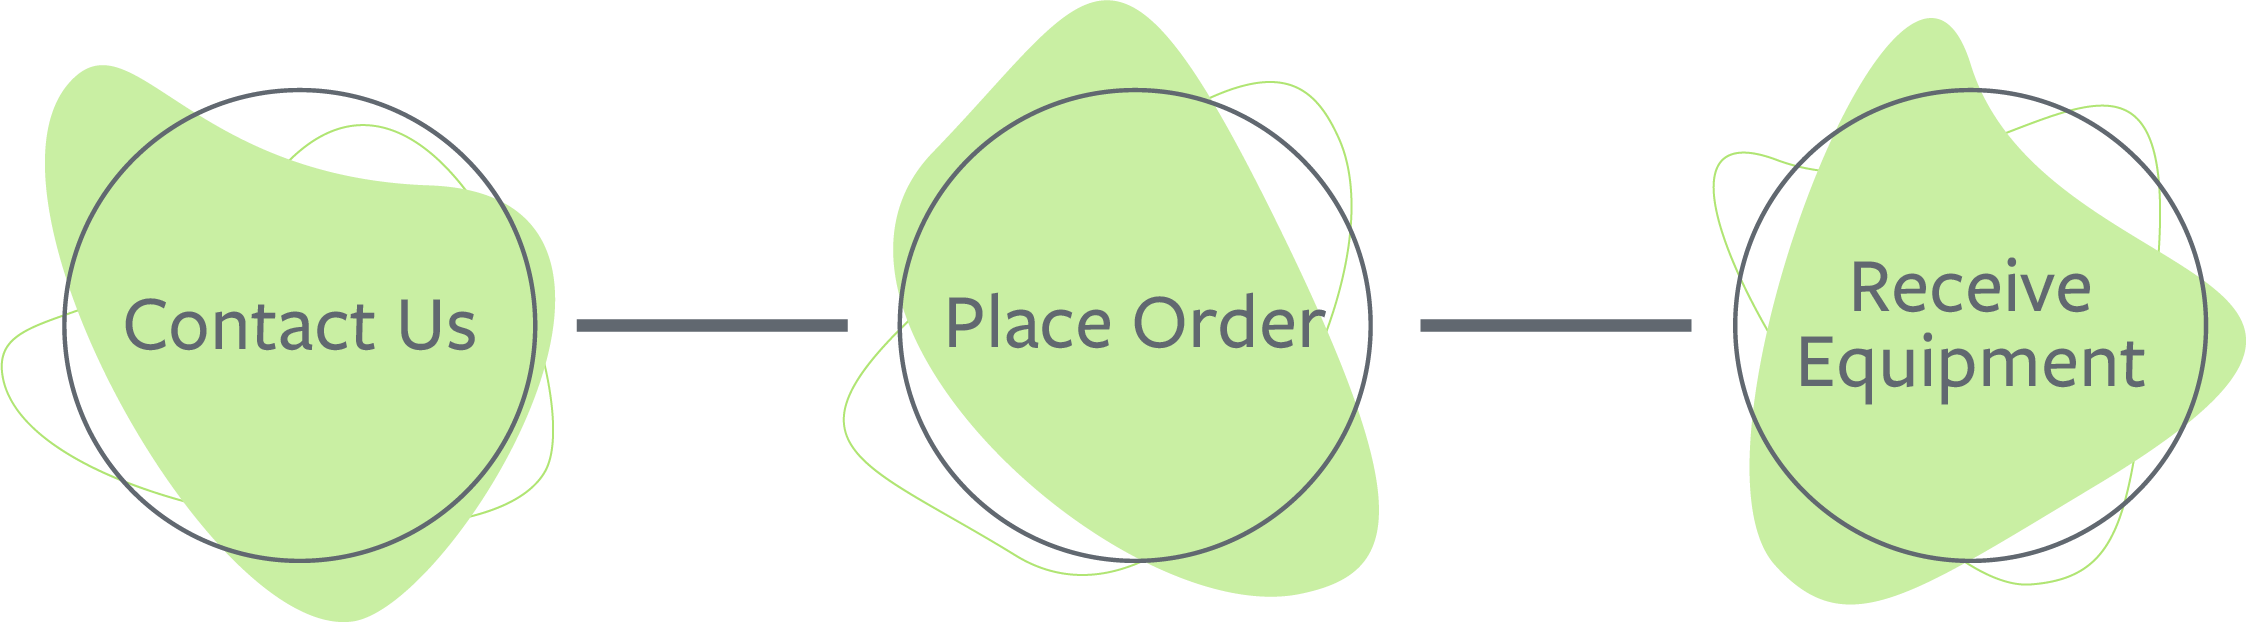 Cisco Meraki Nonprofit Ordering Process graphic